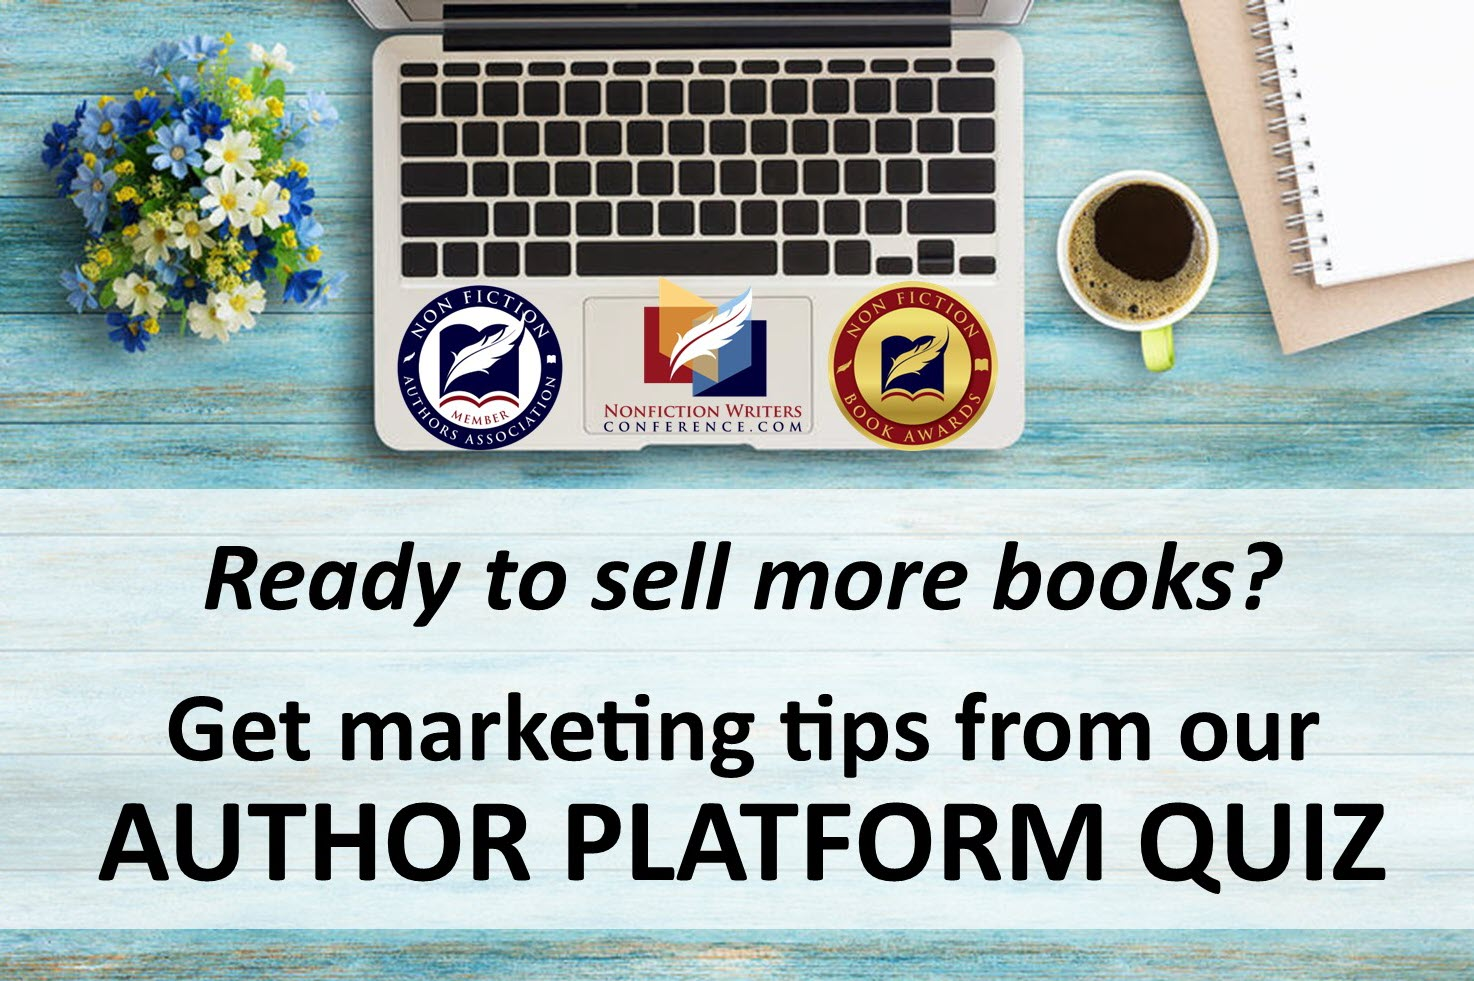 Take our free Author Platform Quiz